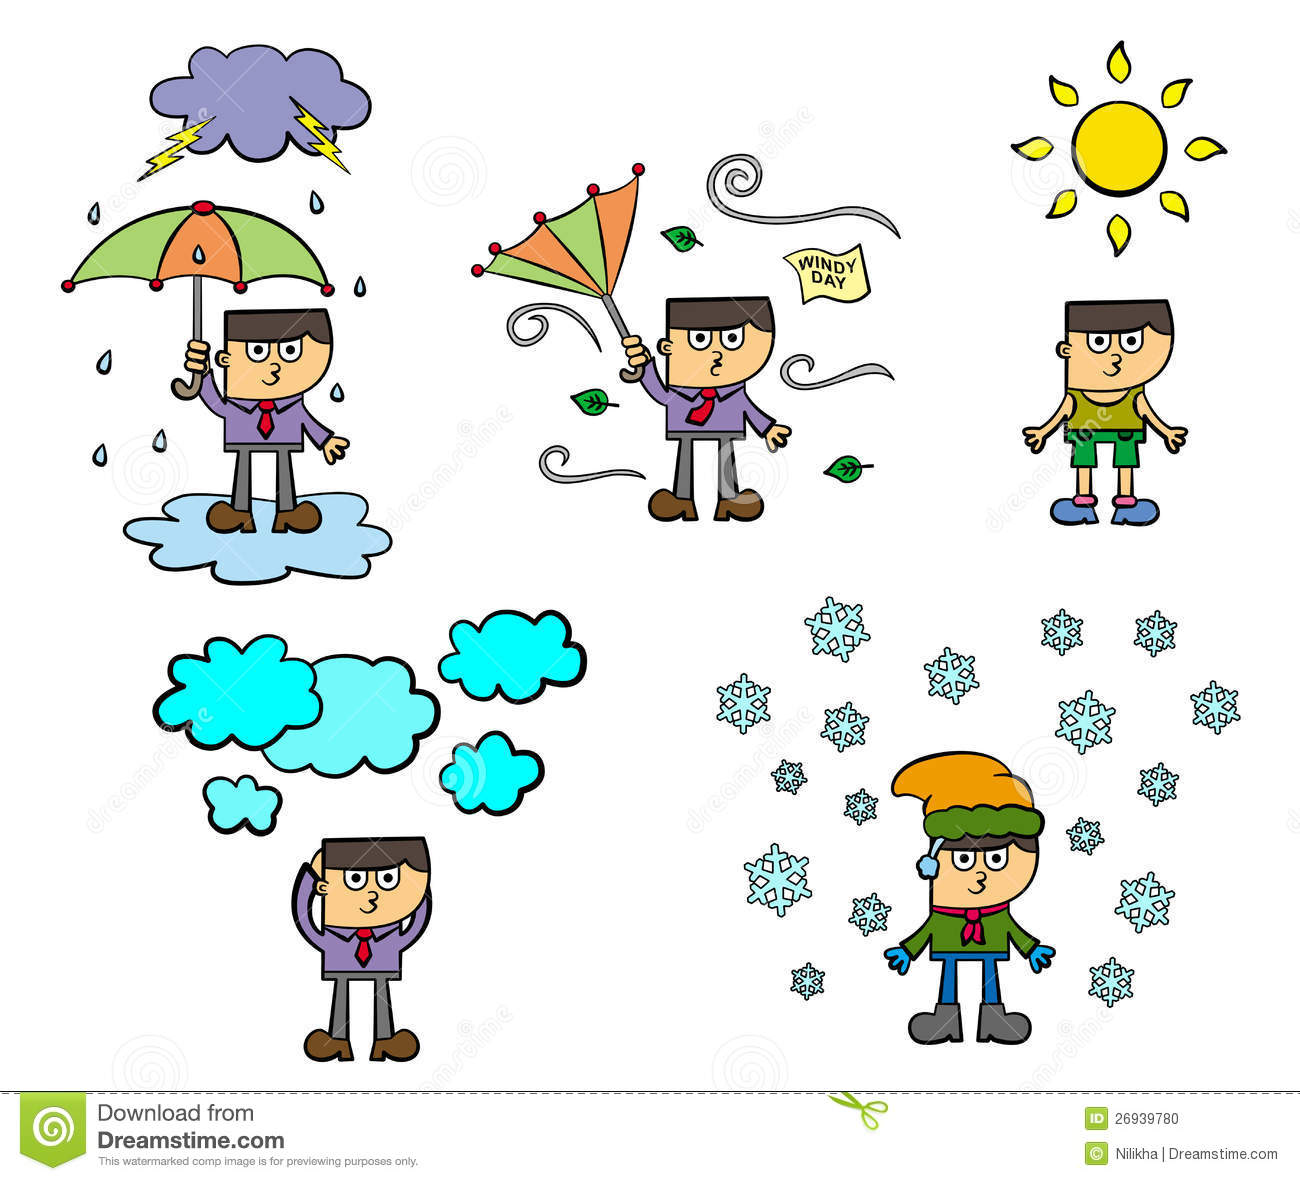 Weather conditions clipart clip black and white library Weather conditions | Clipart Panda - Free Clipart Images clip black and white library